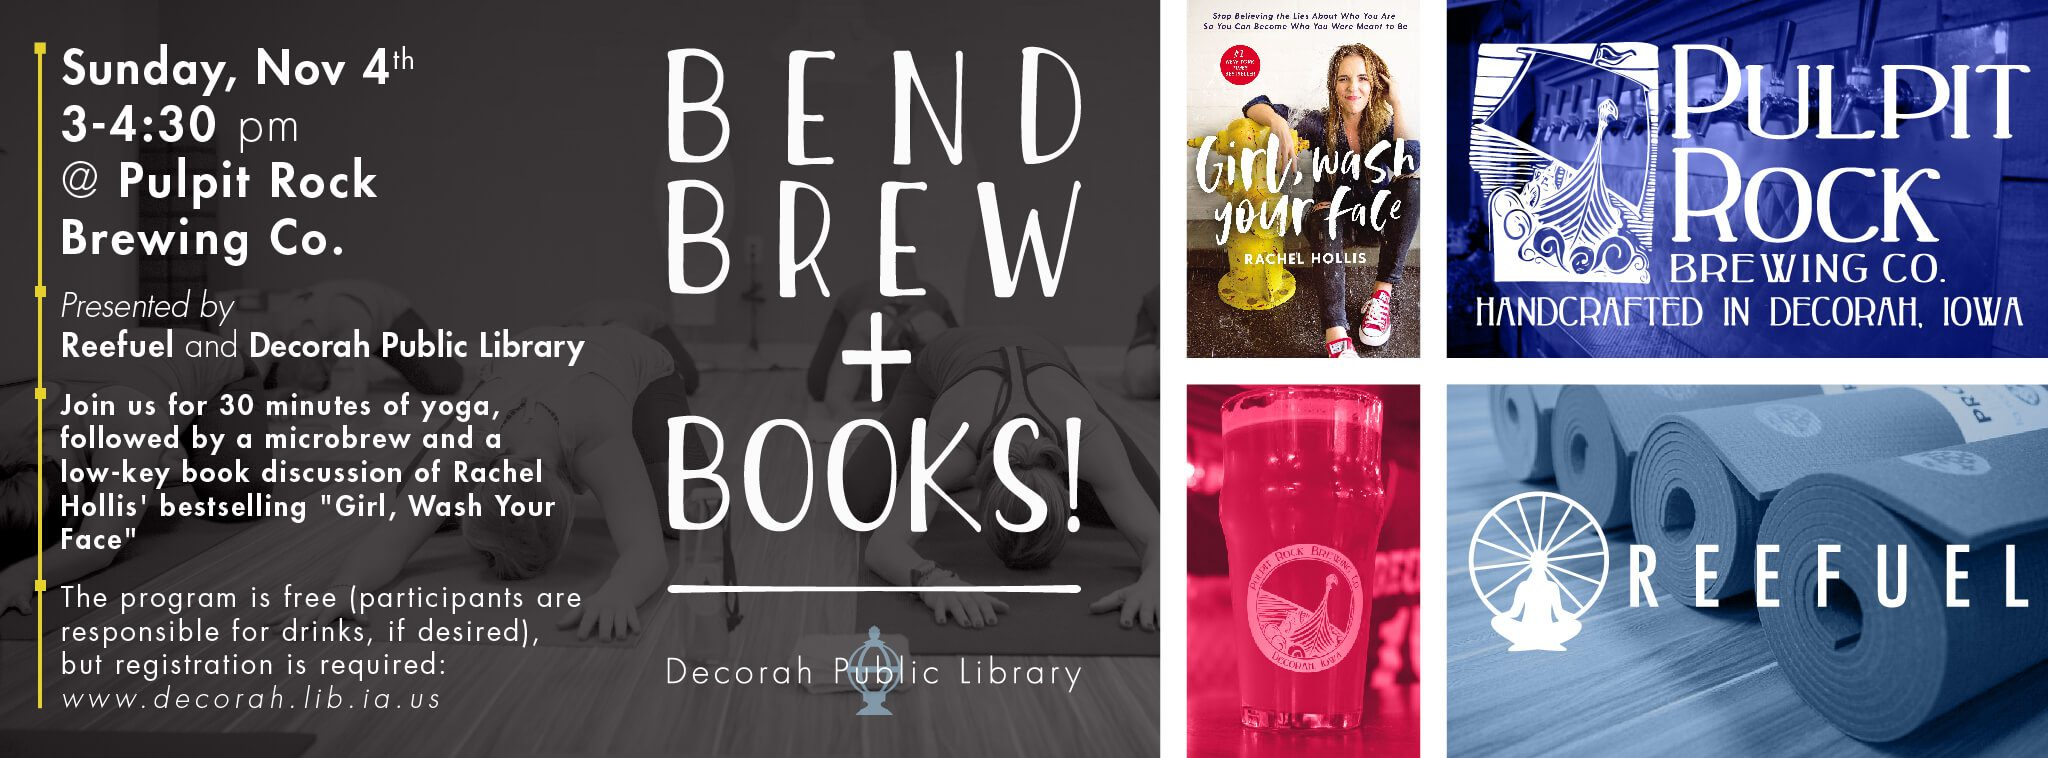 bend, brew and books